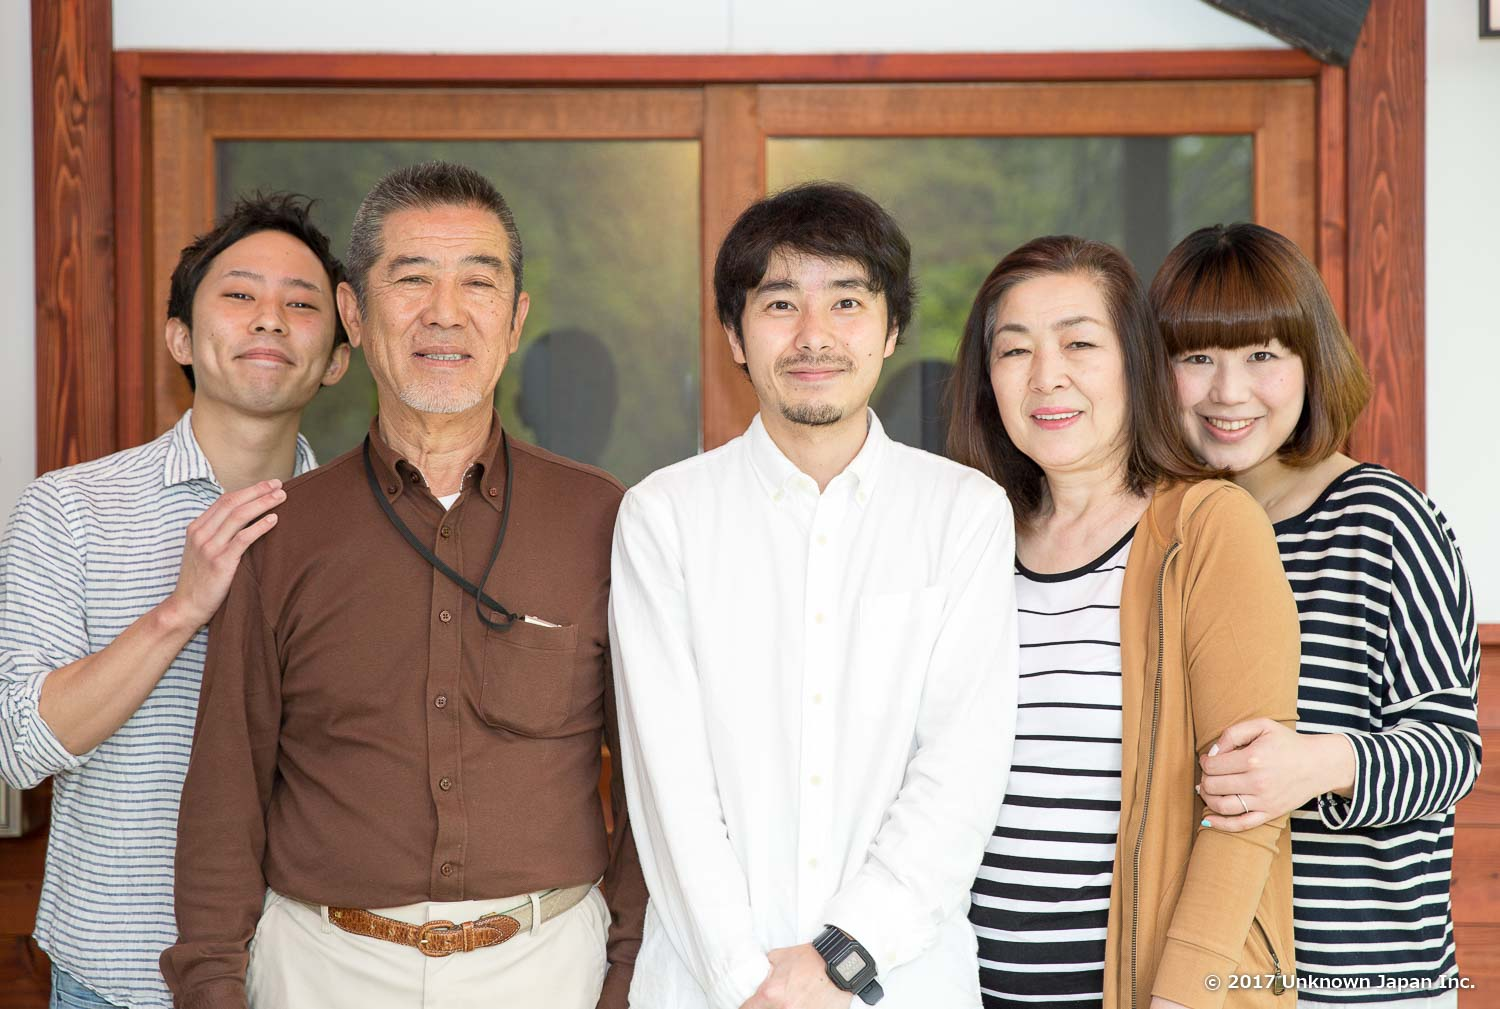 With the owner  Shinpachi Fujita  and his family, in front of the entrance